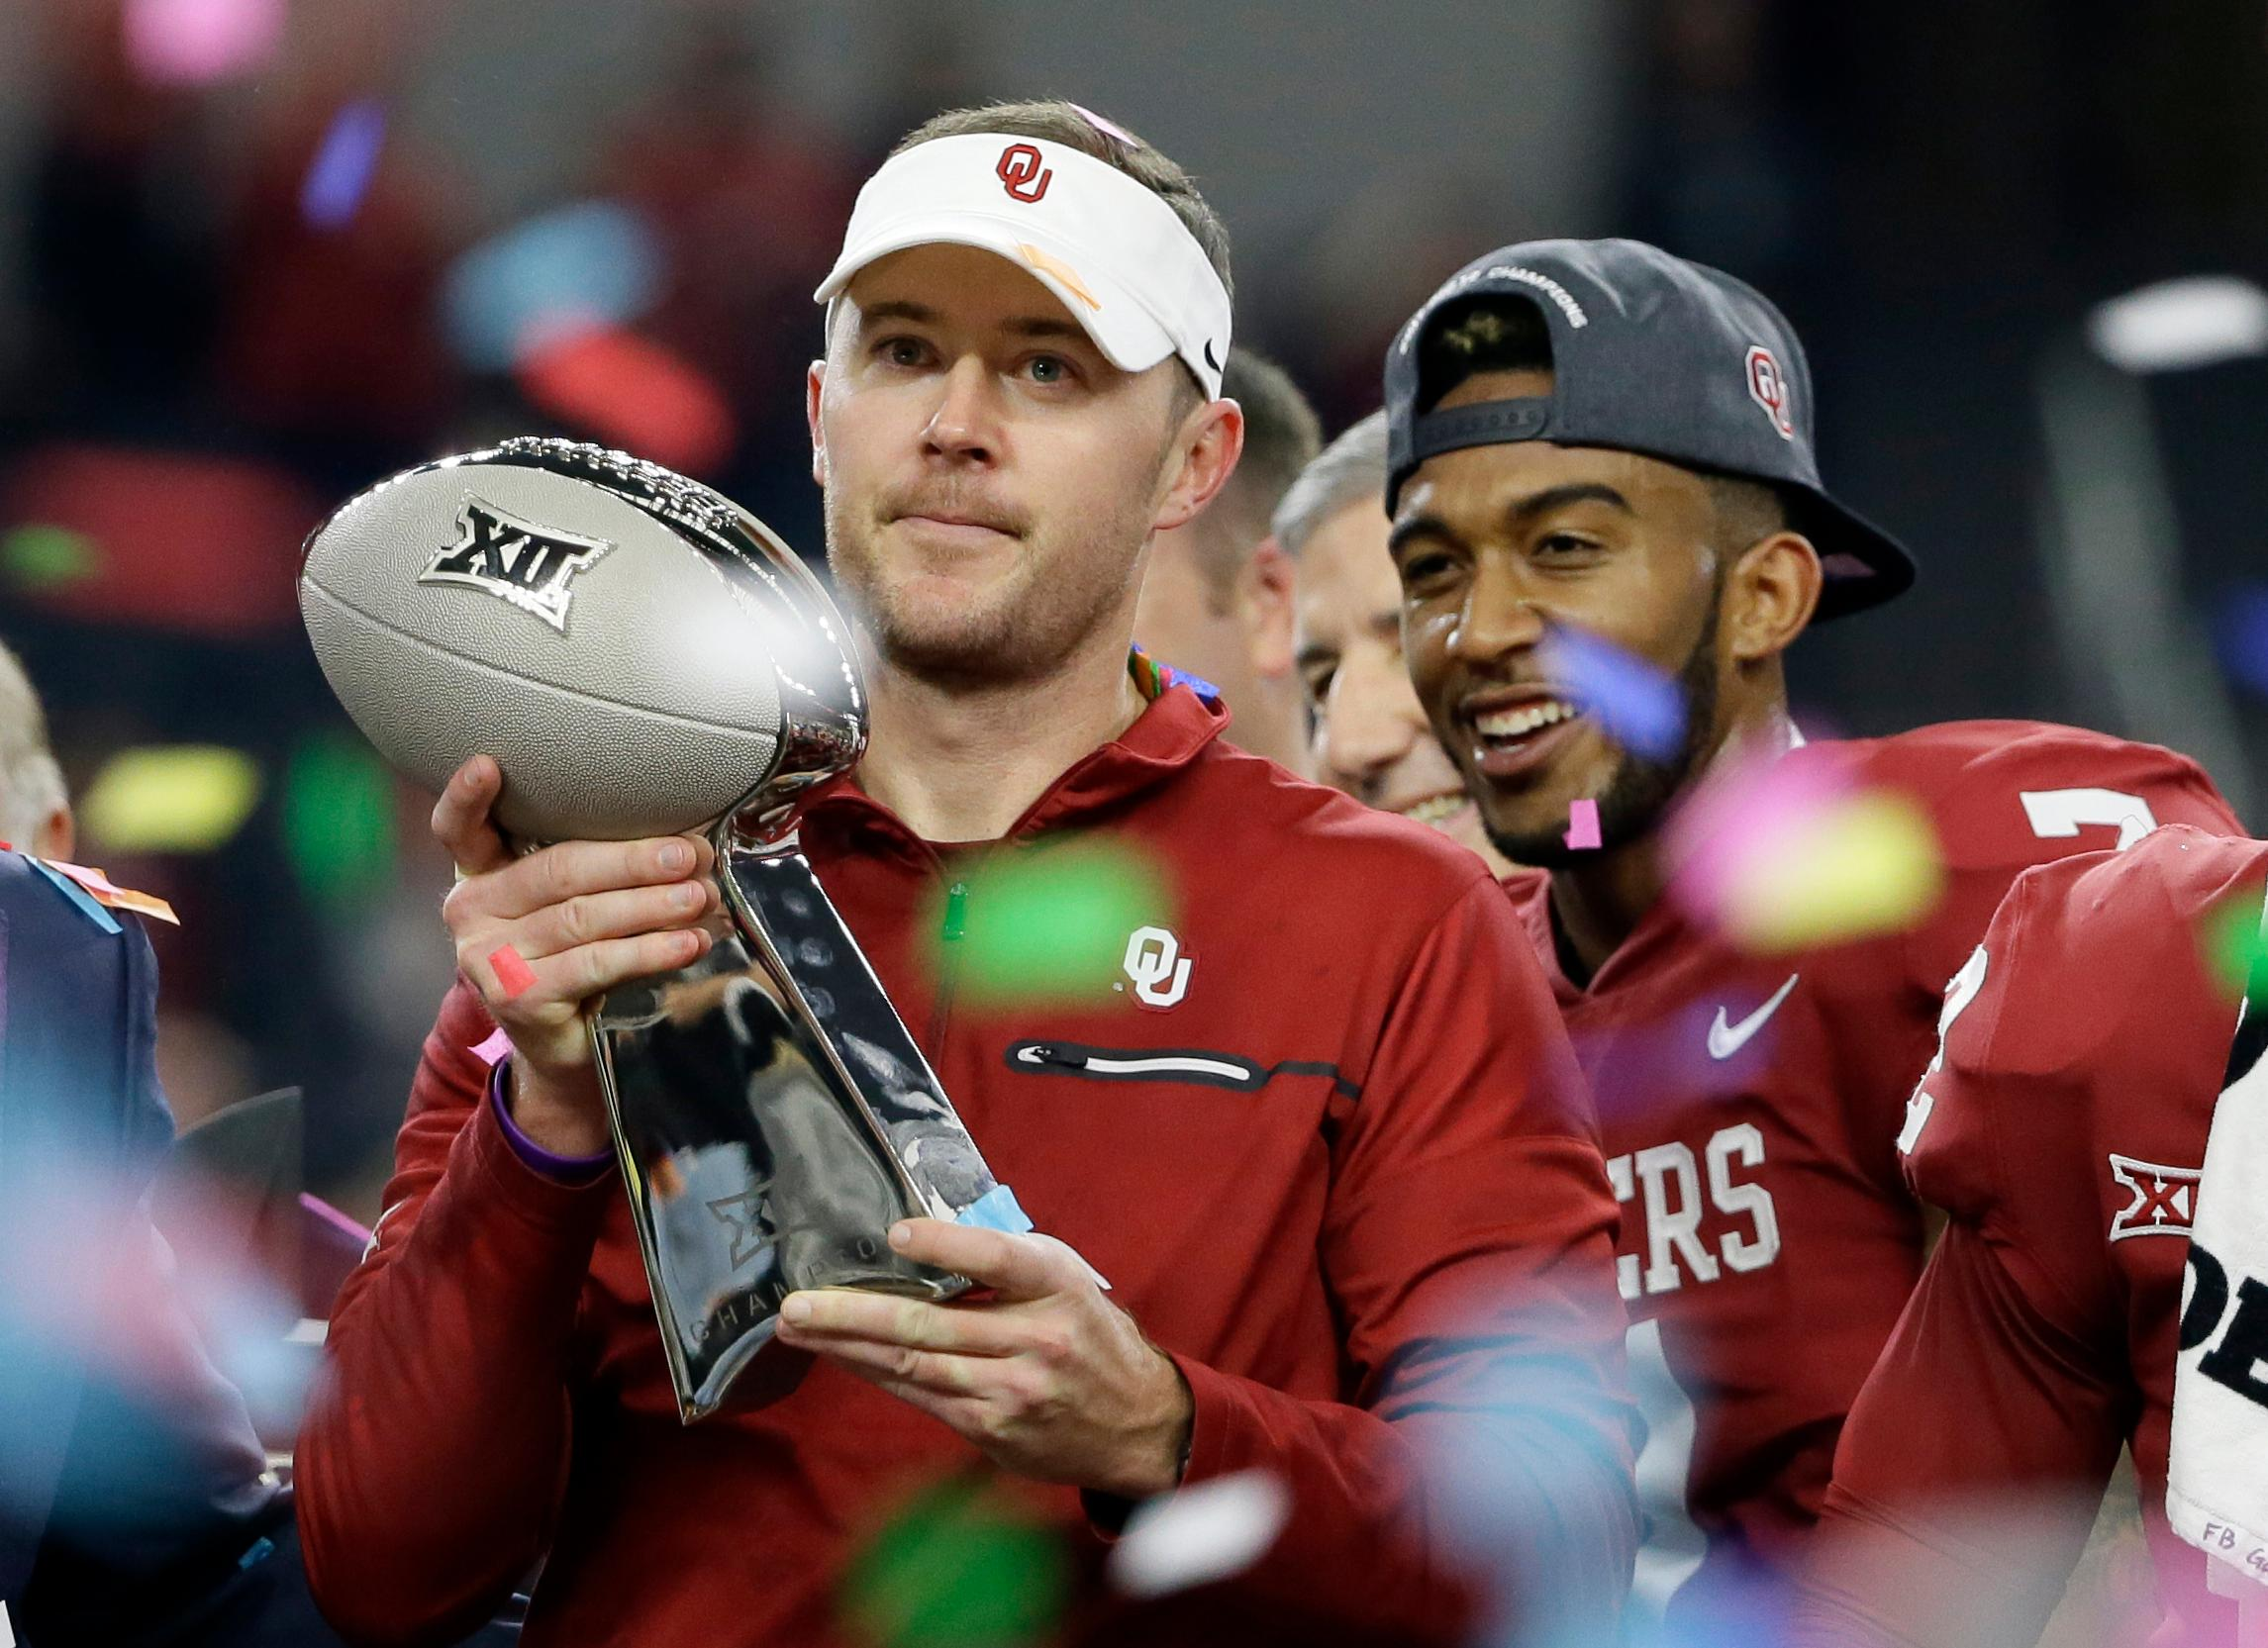 Oklahoma head coach Lincoln Riley holds the Big 12 Conference championship NCAA college football game trophy after Oklahoma defeated TCU on Saturday, Dec. 2, 2017, in Arlington, Texas. (AP Photo/Tony Gutierrez)